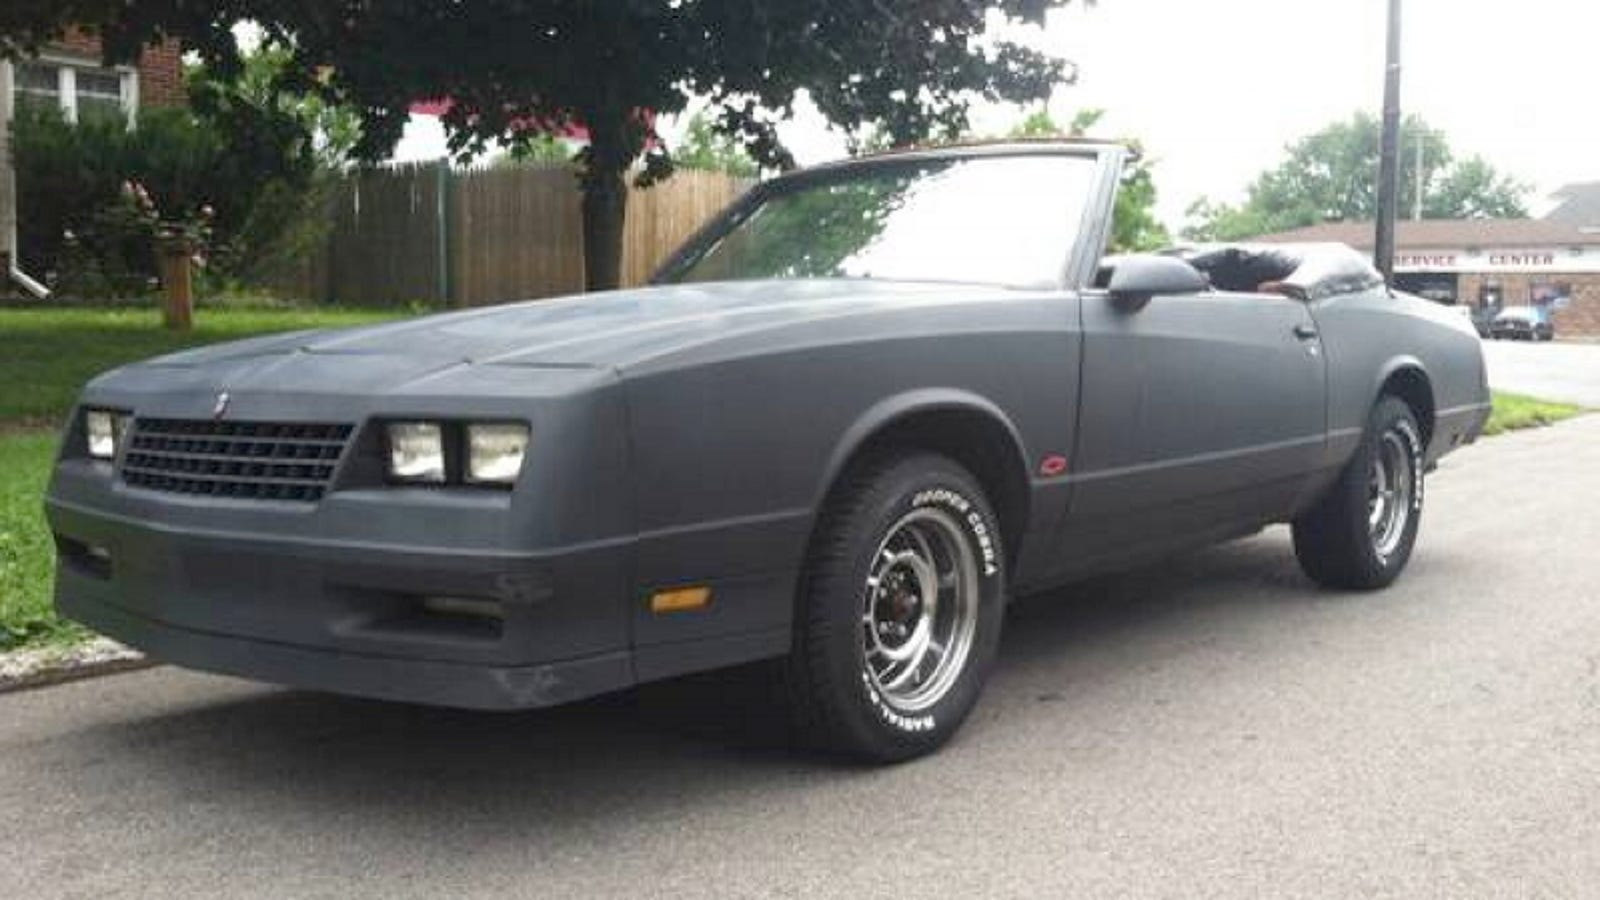 This 1987 Chevy Monte Carlo Lets You Drop The Top and $6,500